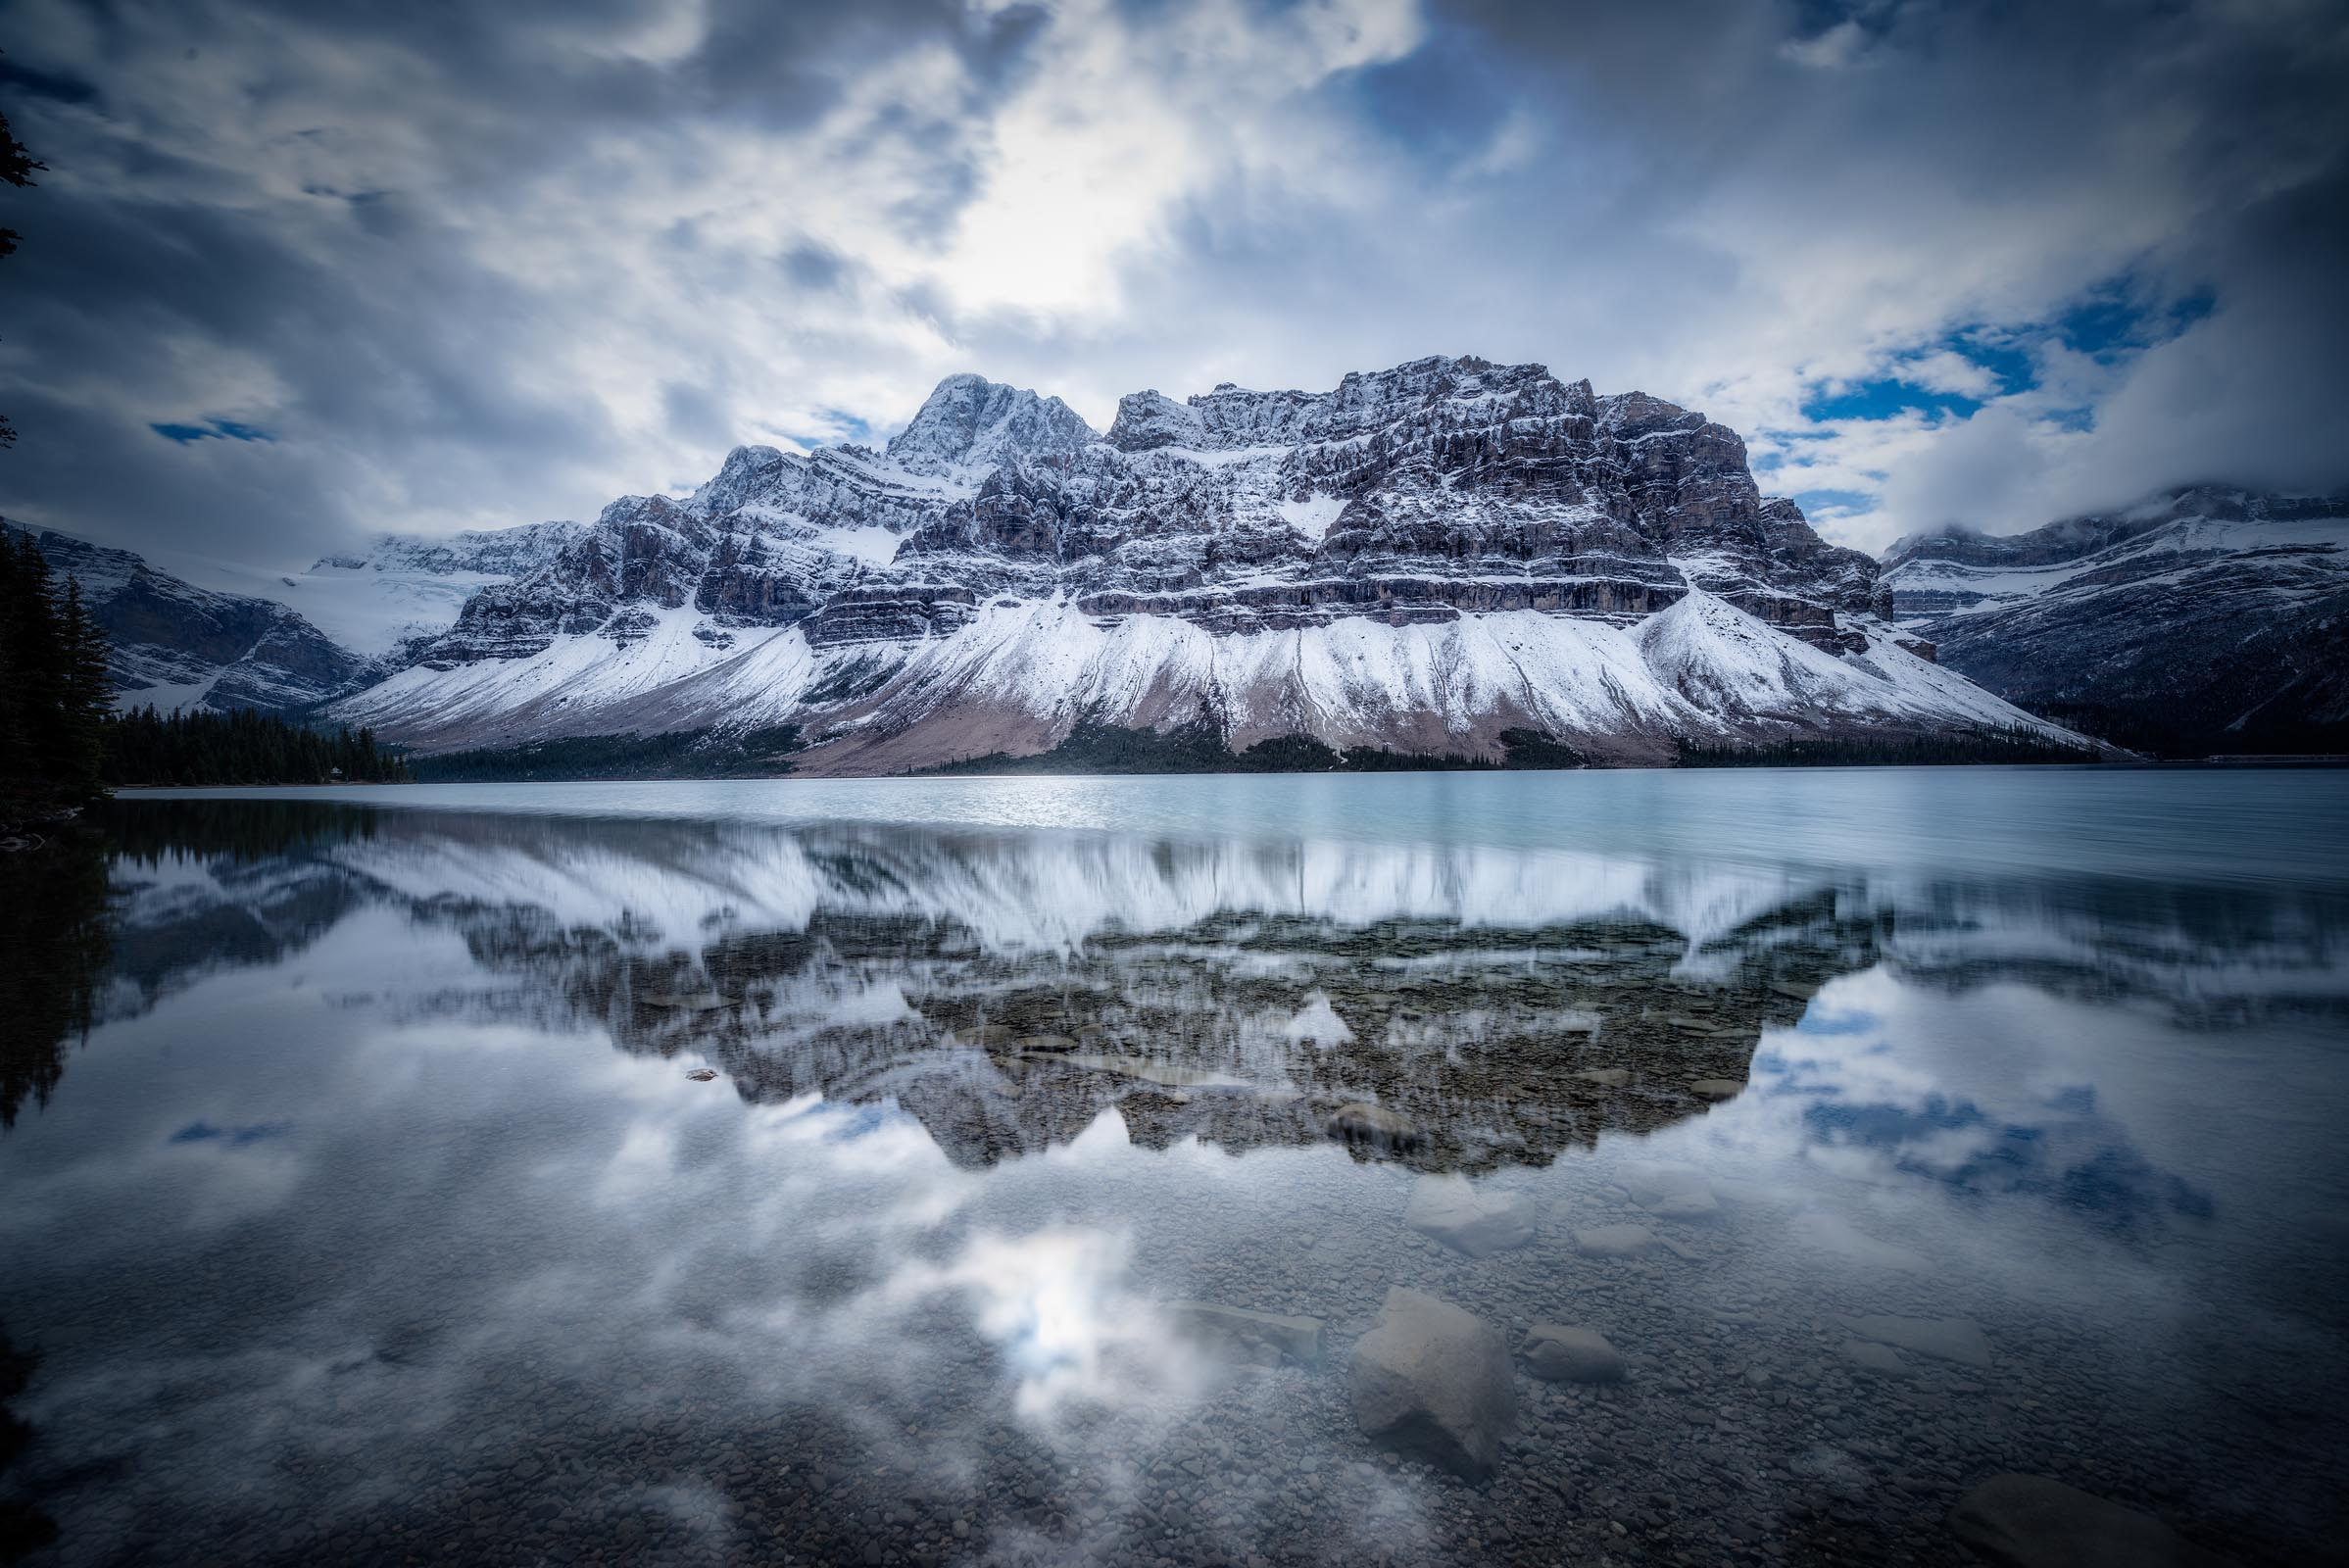 Photograph of Bow Lake in Banff, Canada by Brent Goldman Photography